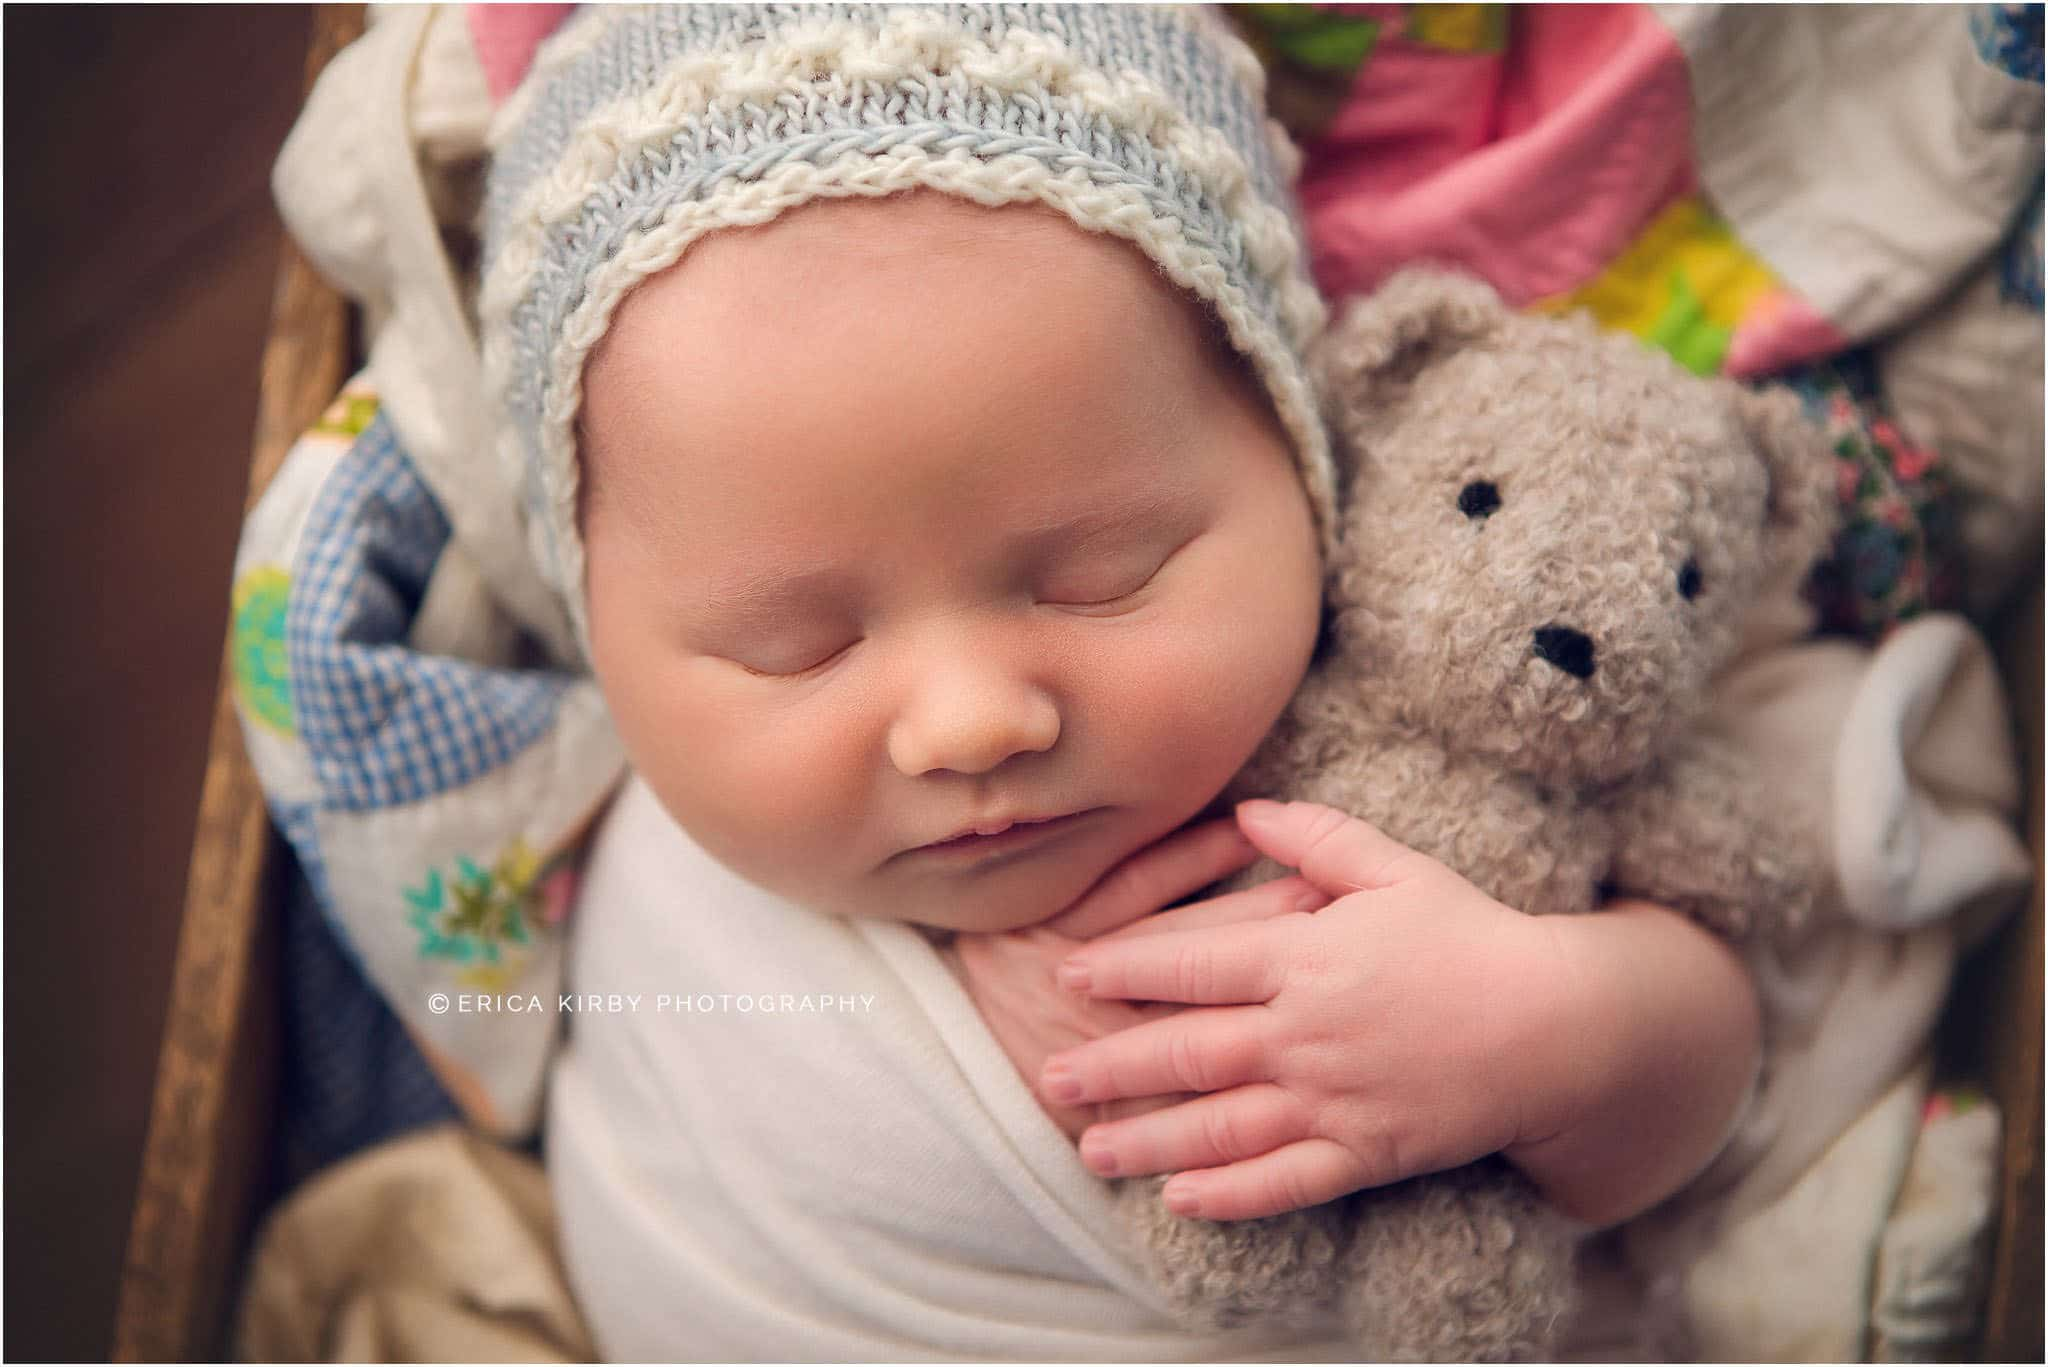 Newborn Photography Bentonville AR | Baby girl newborn session with lots of color, sleeping baby in adorable poses | Erica Kirby Photography